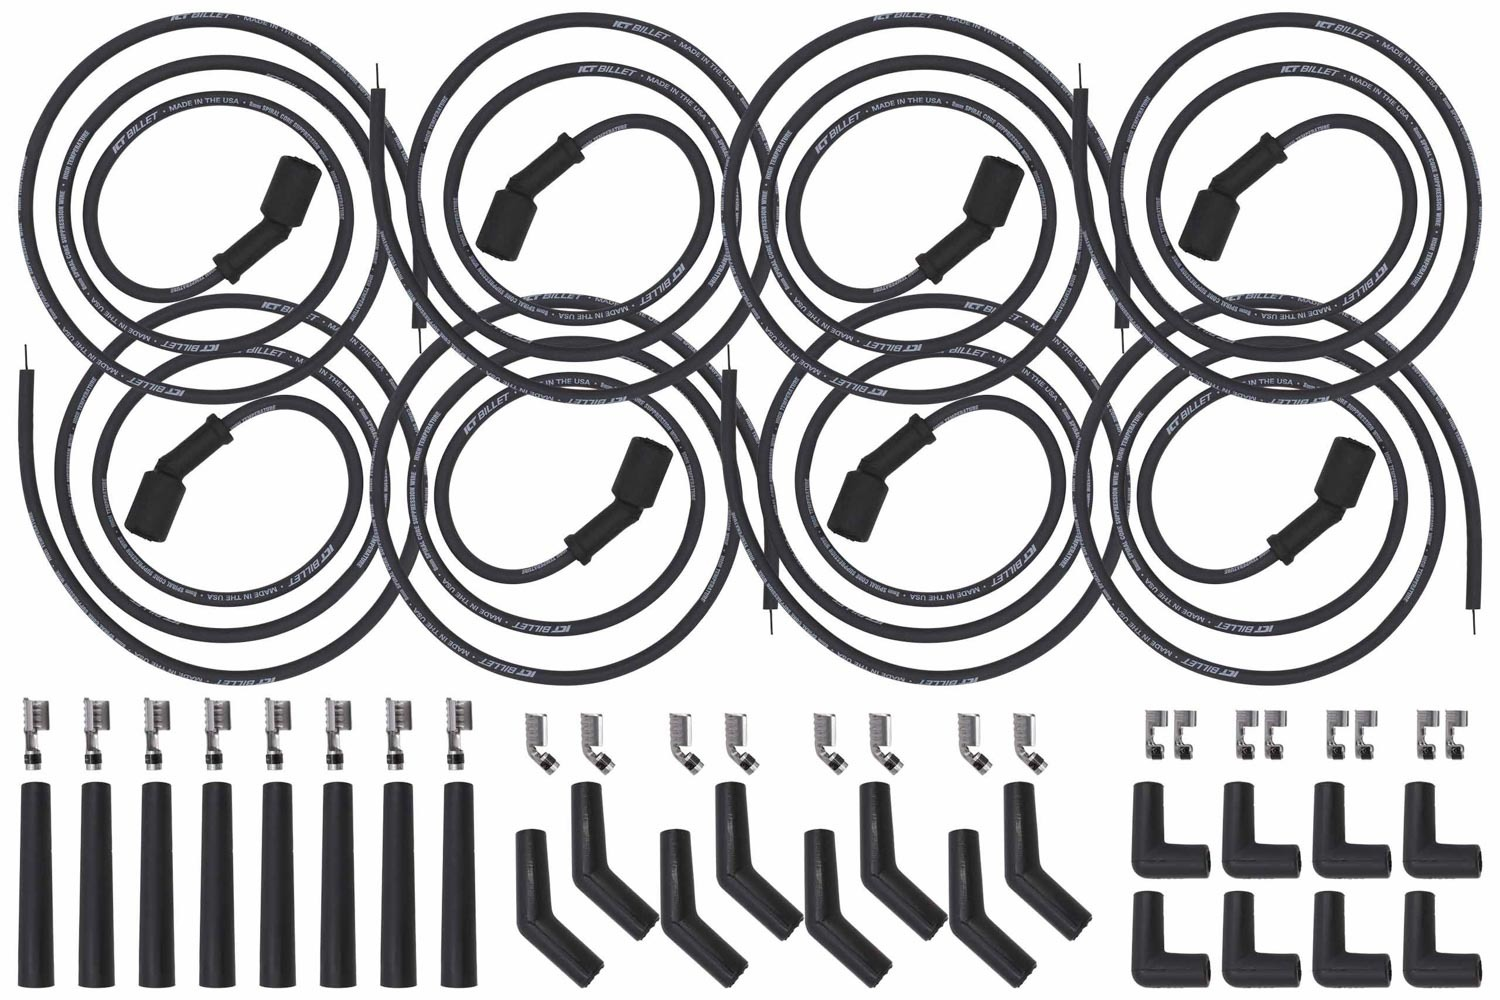 ICT Billet 551083 Spark Plug Wire Set, Spiral Core, 8 mm, Black,  Factory Style Boots / Terminals, GM LS-Series / Gm GenV LT-Series, Kit